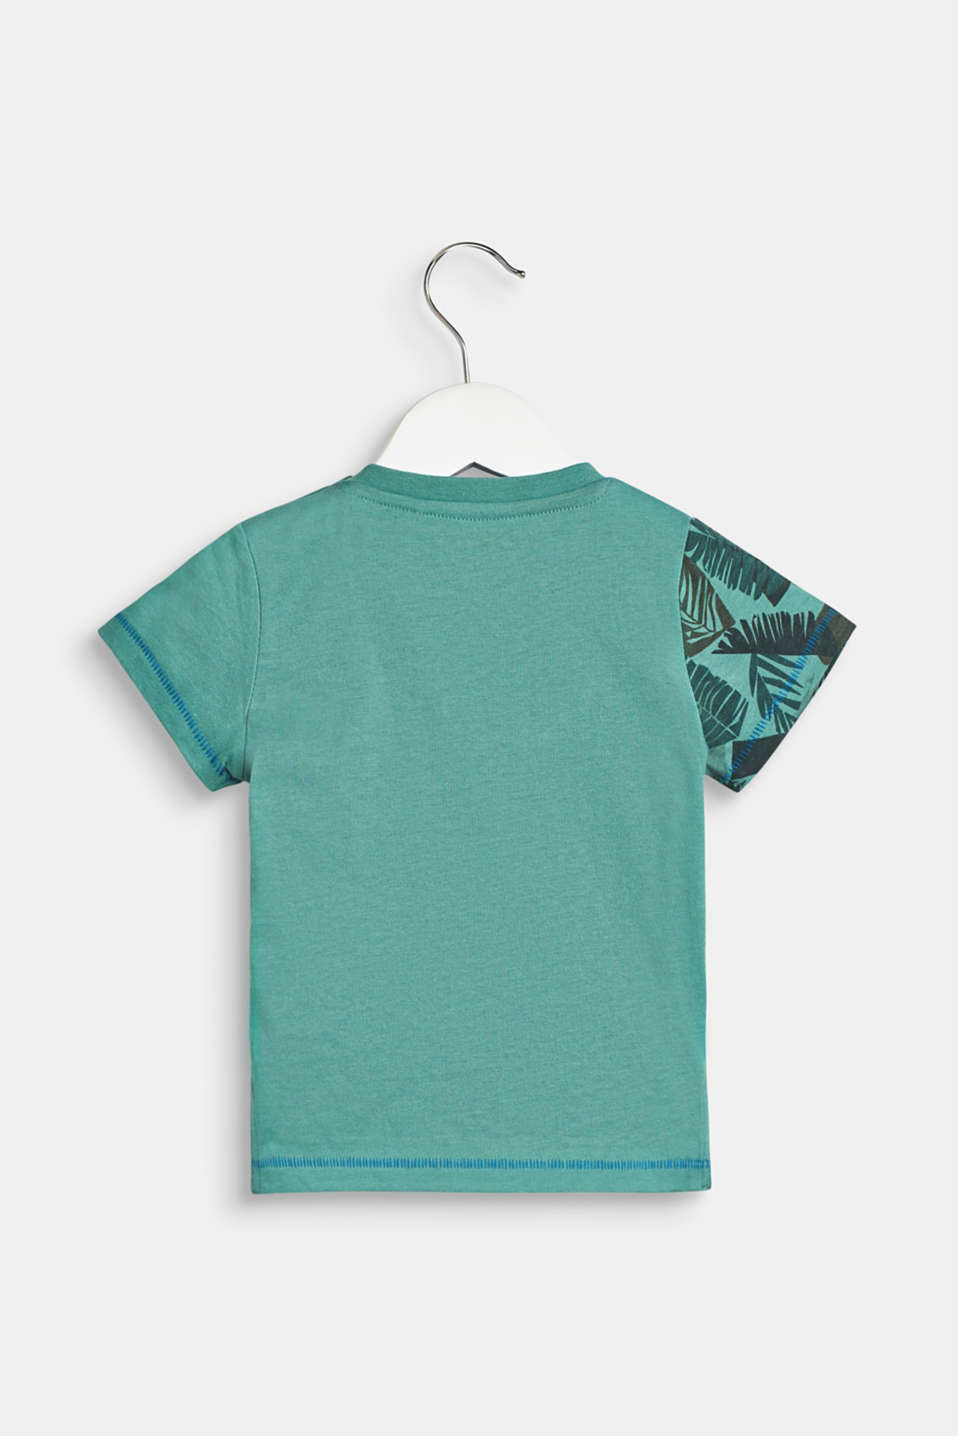 T-shirt with tropical prints, 100% cotton, LCSOFT GREEN, detail image number 1